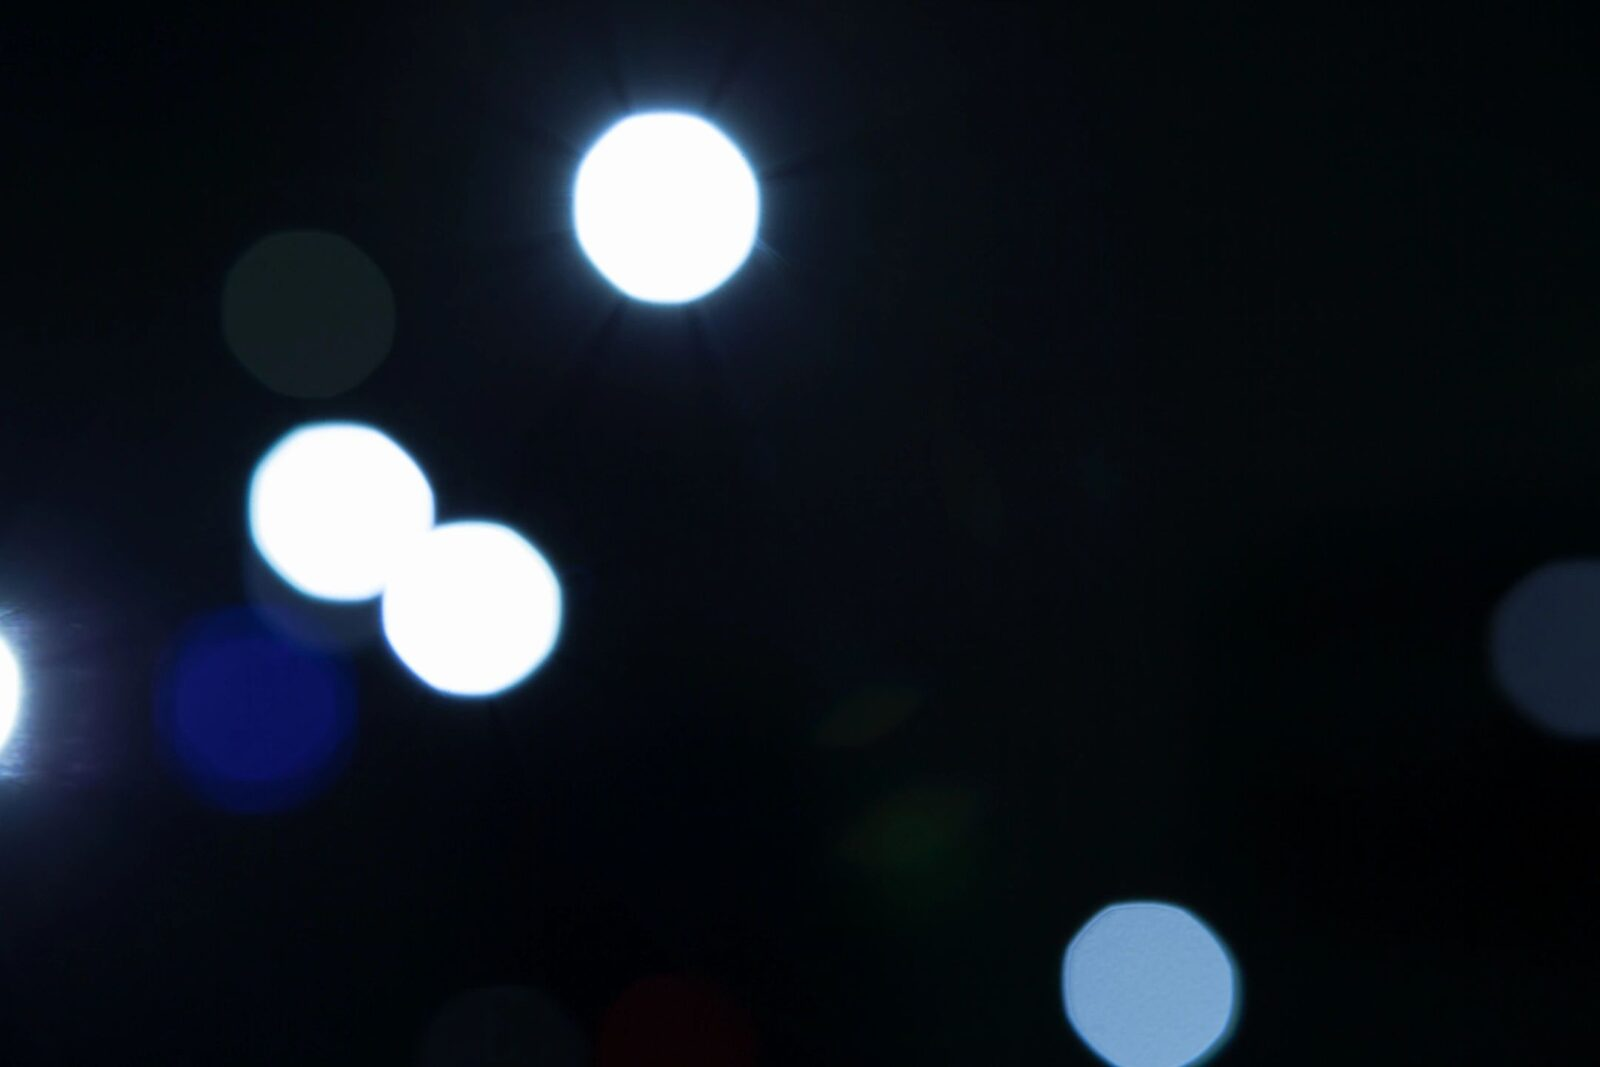 blurry white and blue lights on a black background